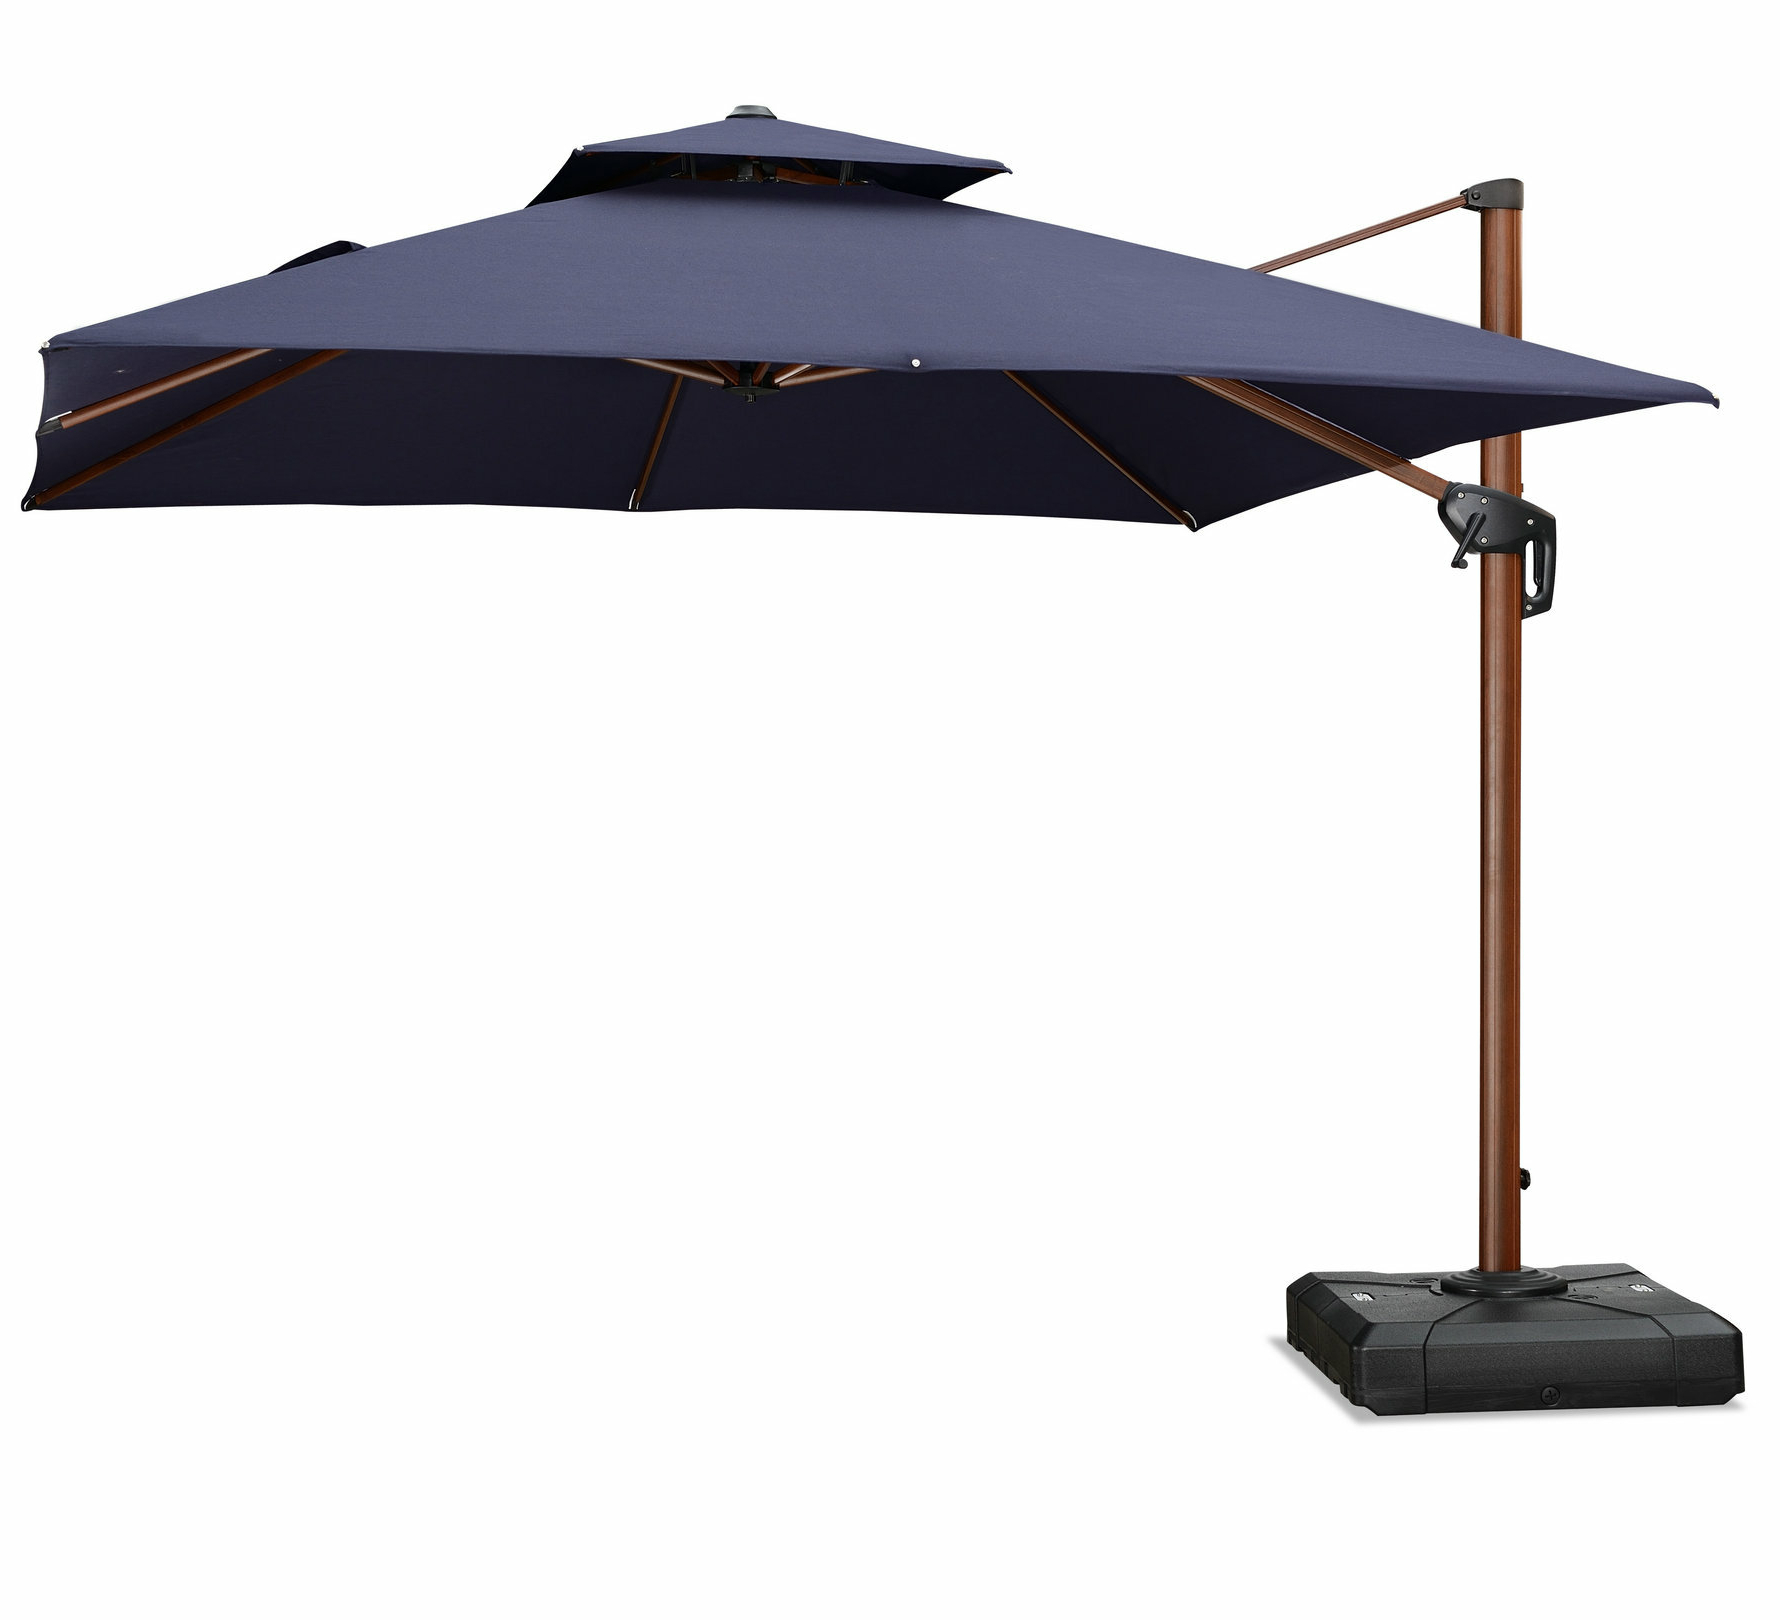 Trendy Lytham Cantilever Umbrellas Throughout Waddell 10' Square Cantilever Umbrella (View 2 of 20)